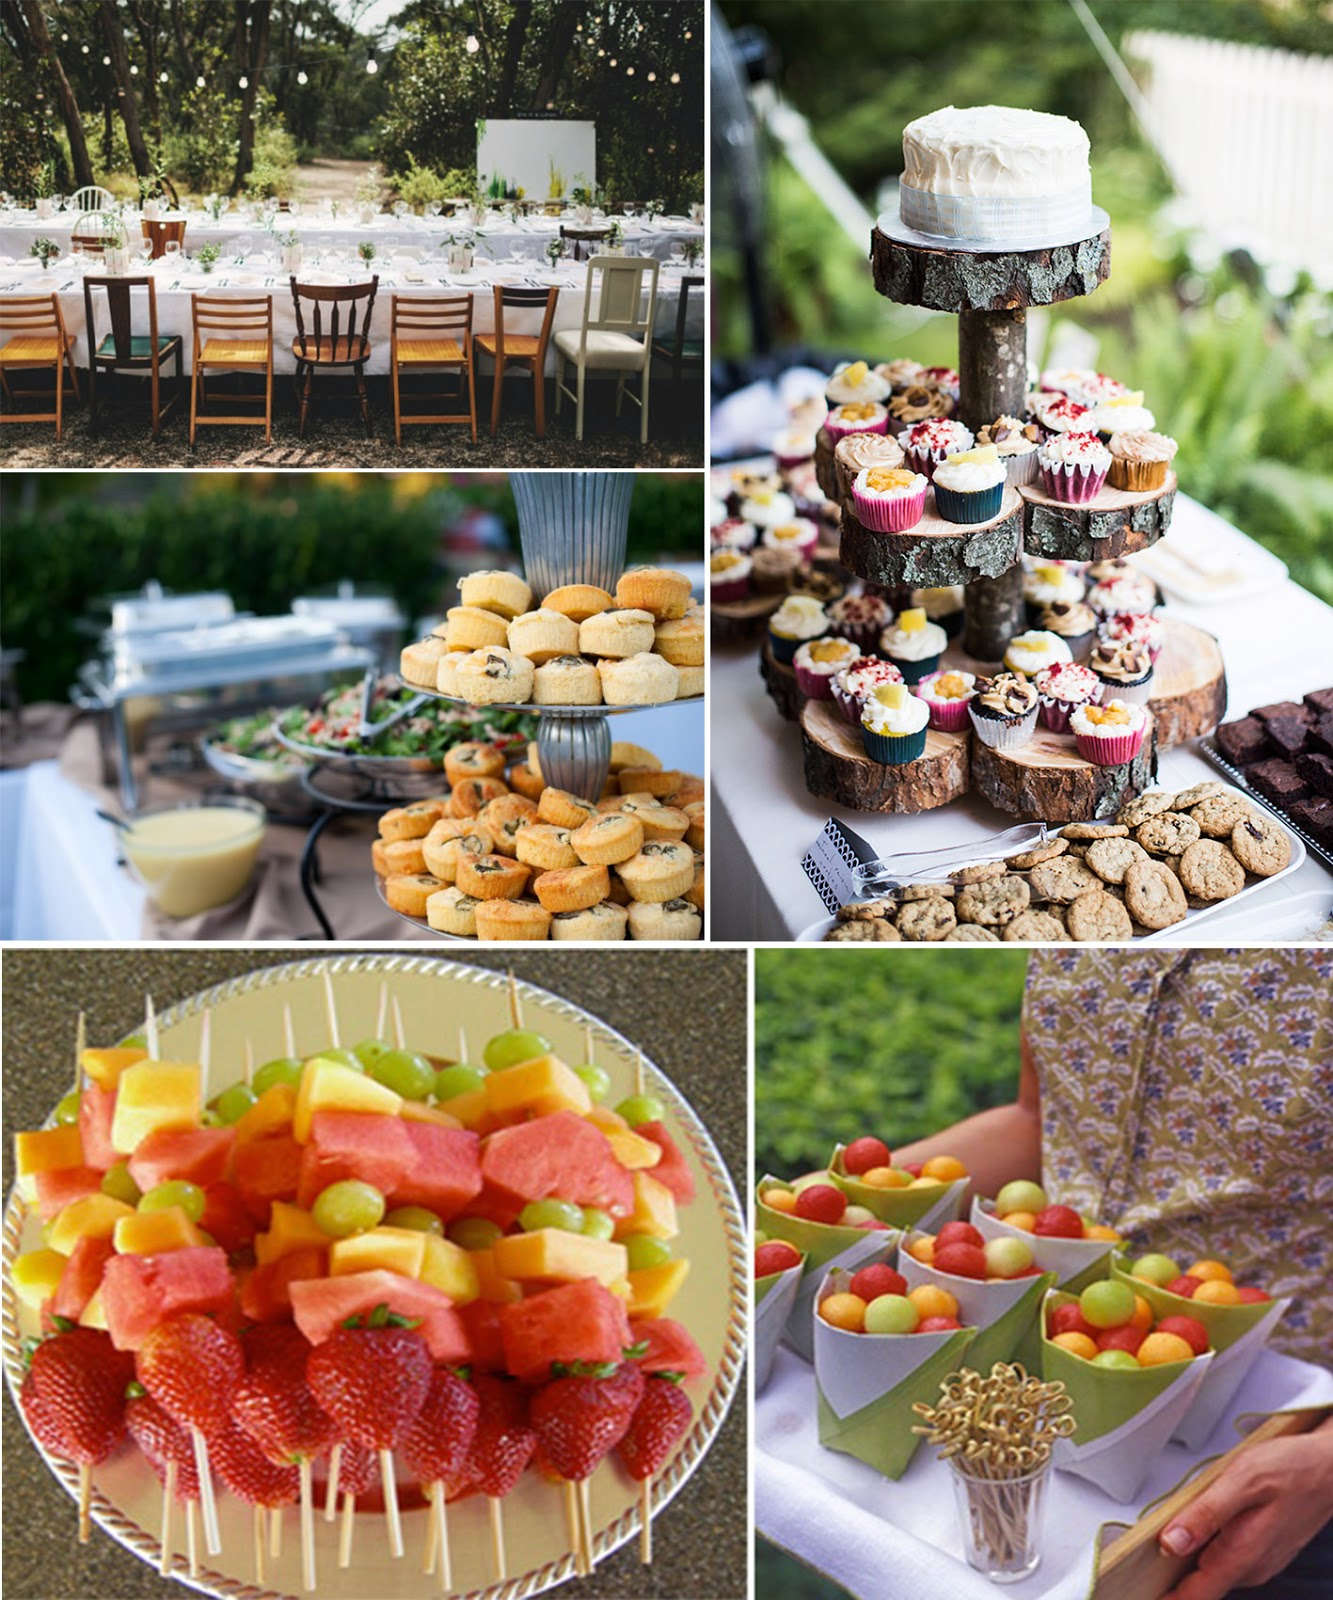 backyard party menu ideas | backyard design and backyard ideas